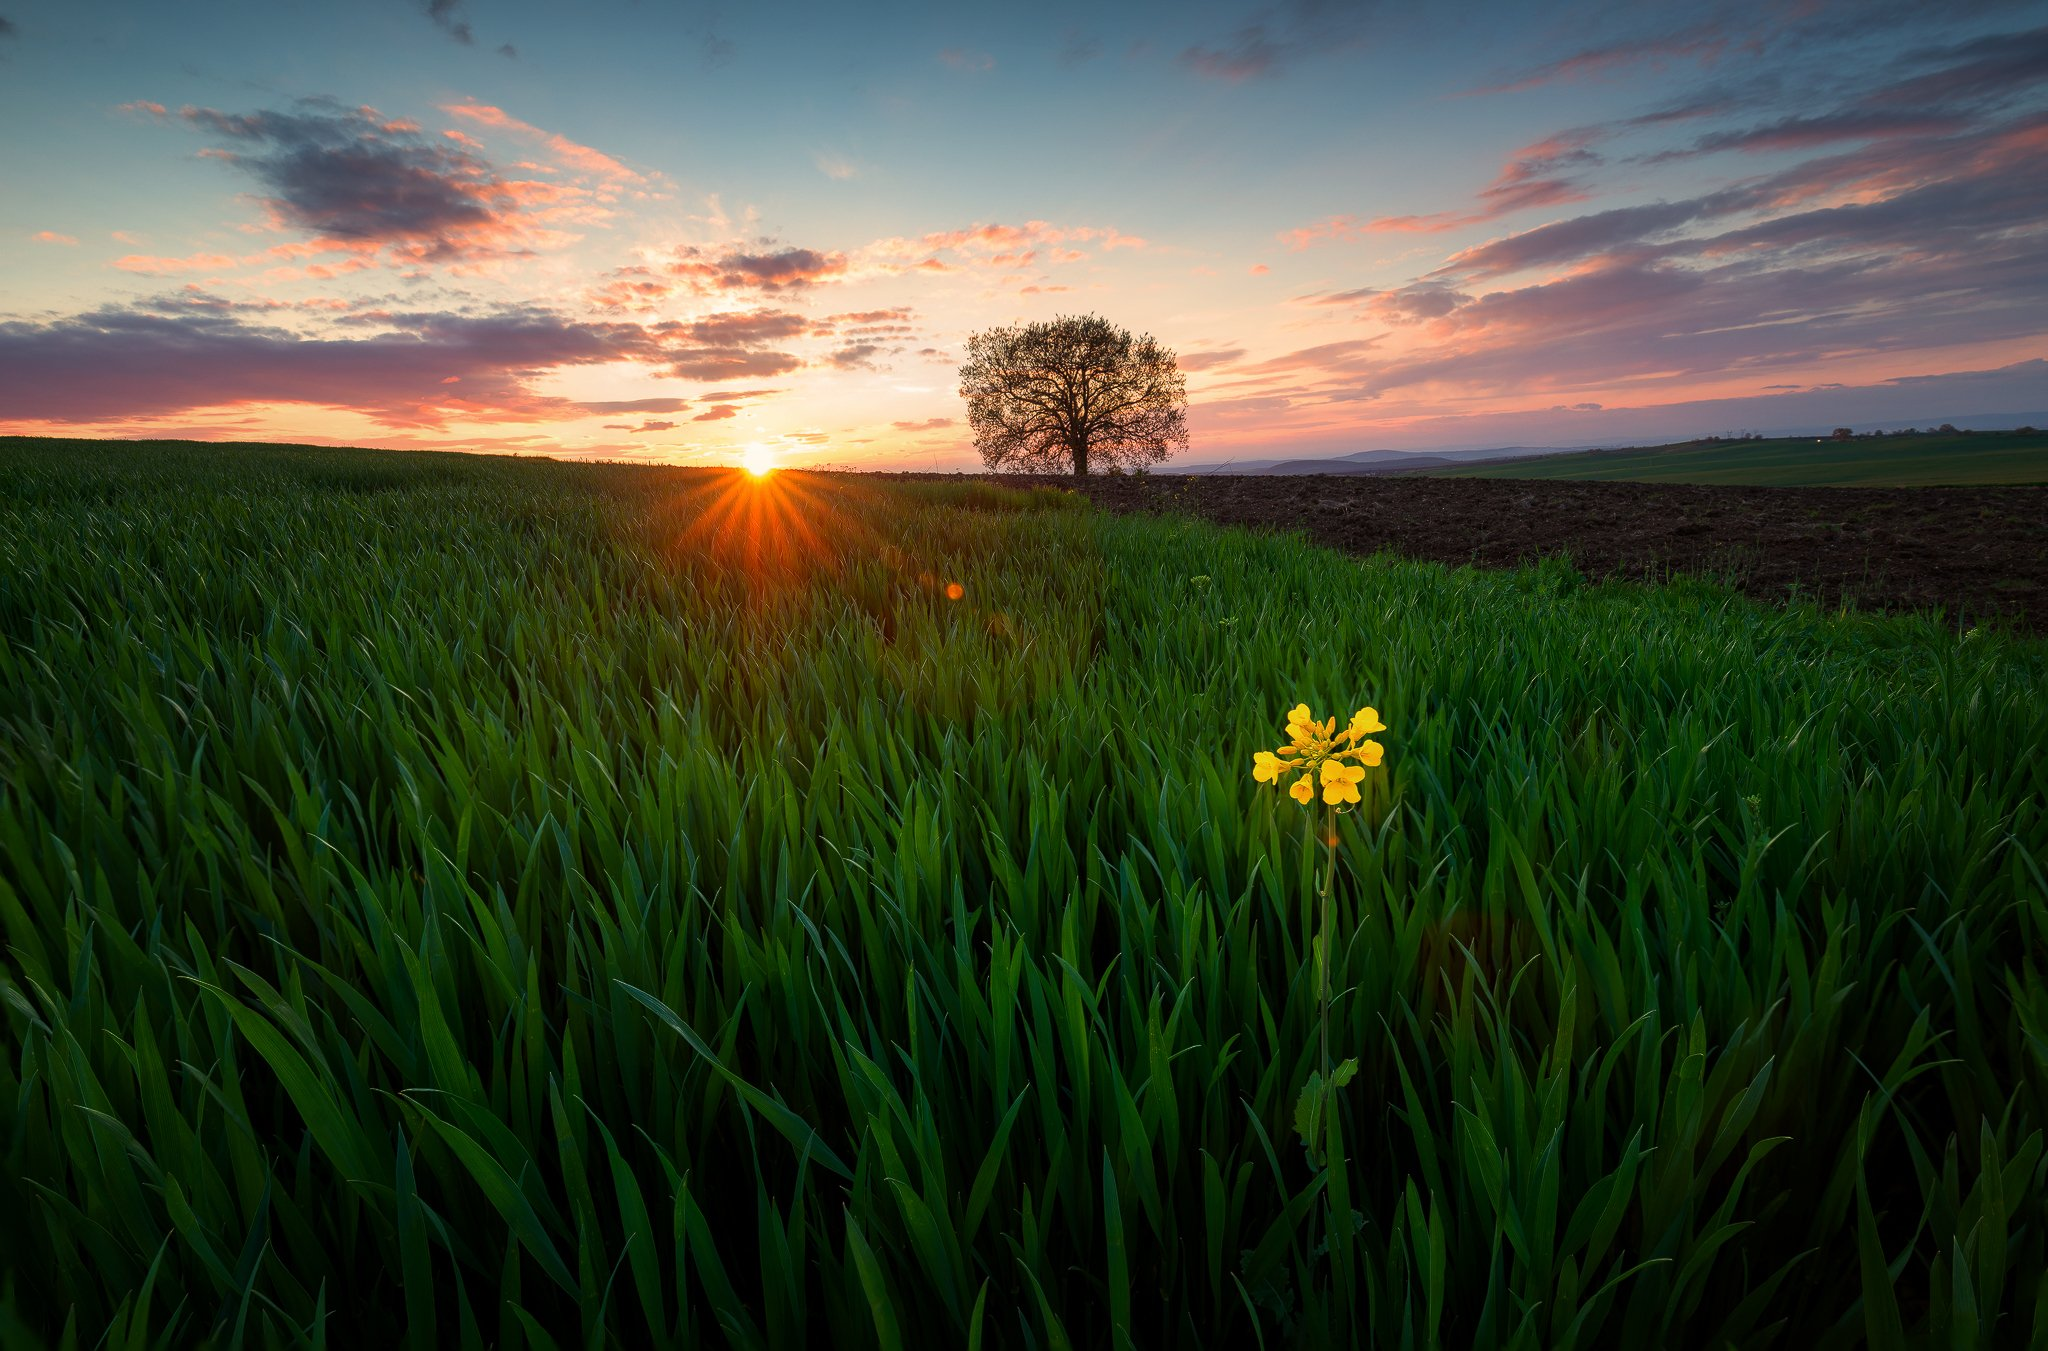 agronomy, blooming, cloud, clouds, colorful, daisy flower, dandelions, dusk, ecology, garden, green field, green fields, green grass, green mountains, greenery, health, idyllic, isolated, leafy, lonely flower, lonely tree, meadow flowers, oak, outdoor, ou, Иван Димов